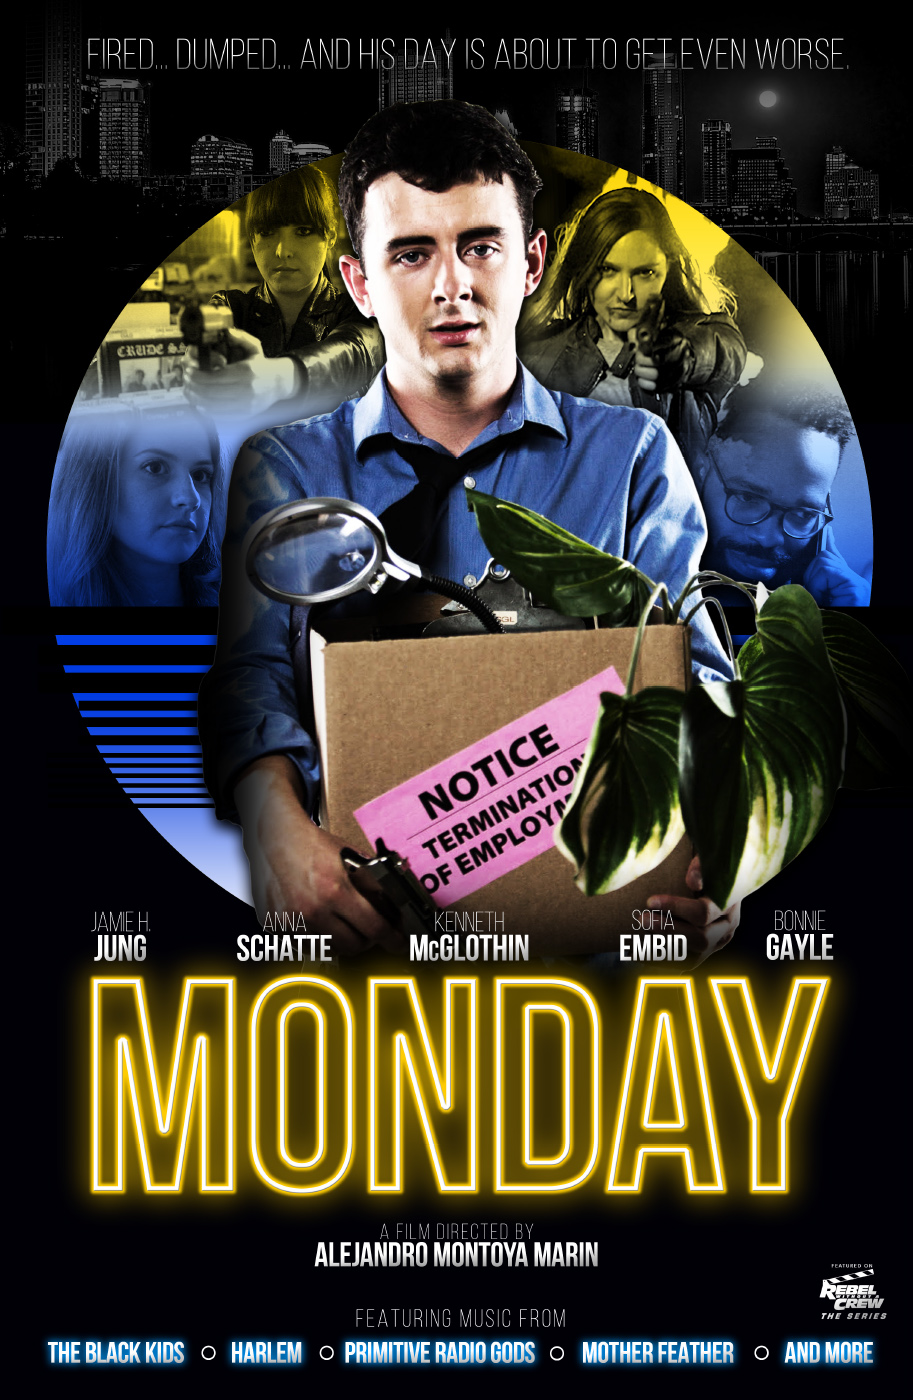 MONDAY poster 11x17 FOR WEB.jpg